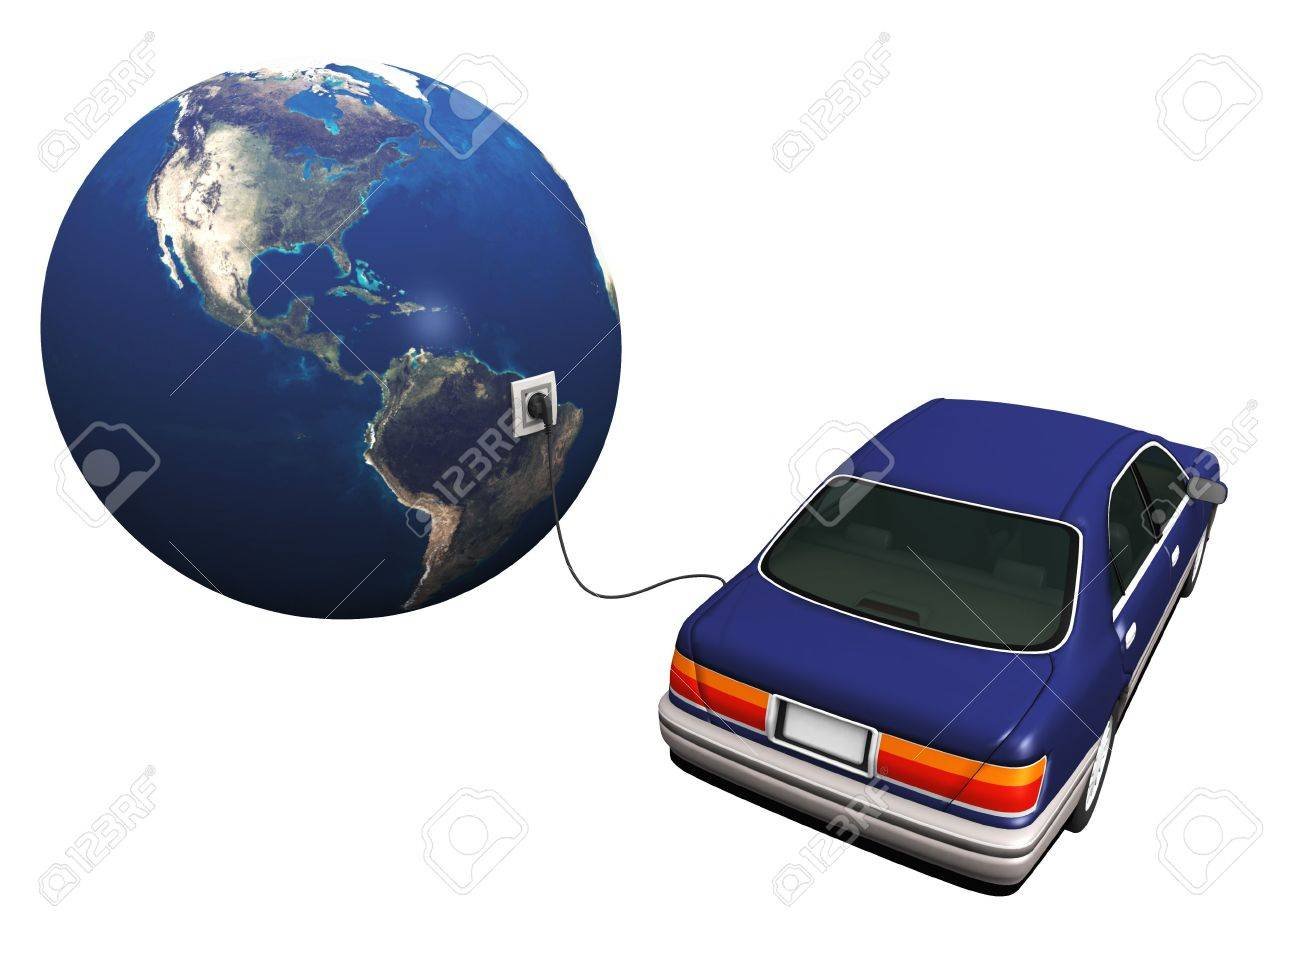 An electric car plugged in with a cord to the earth, charging it's 